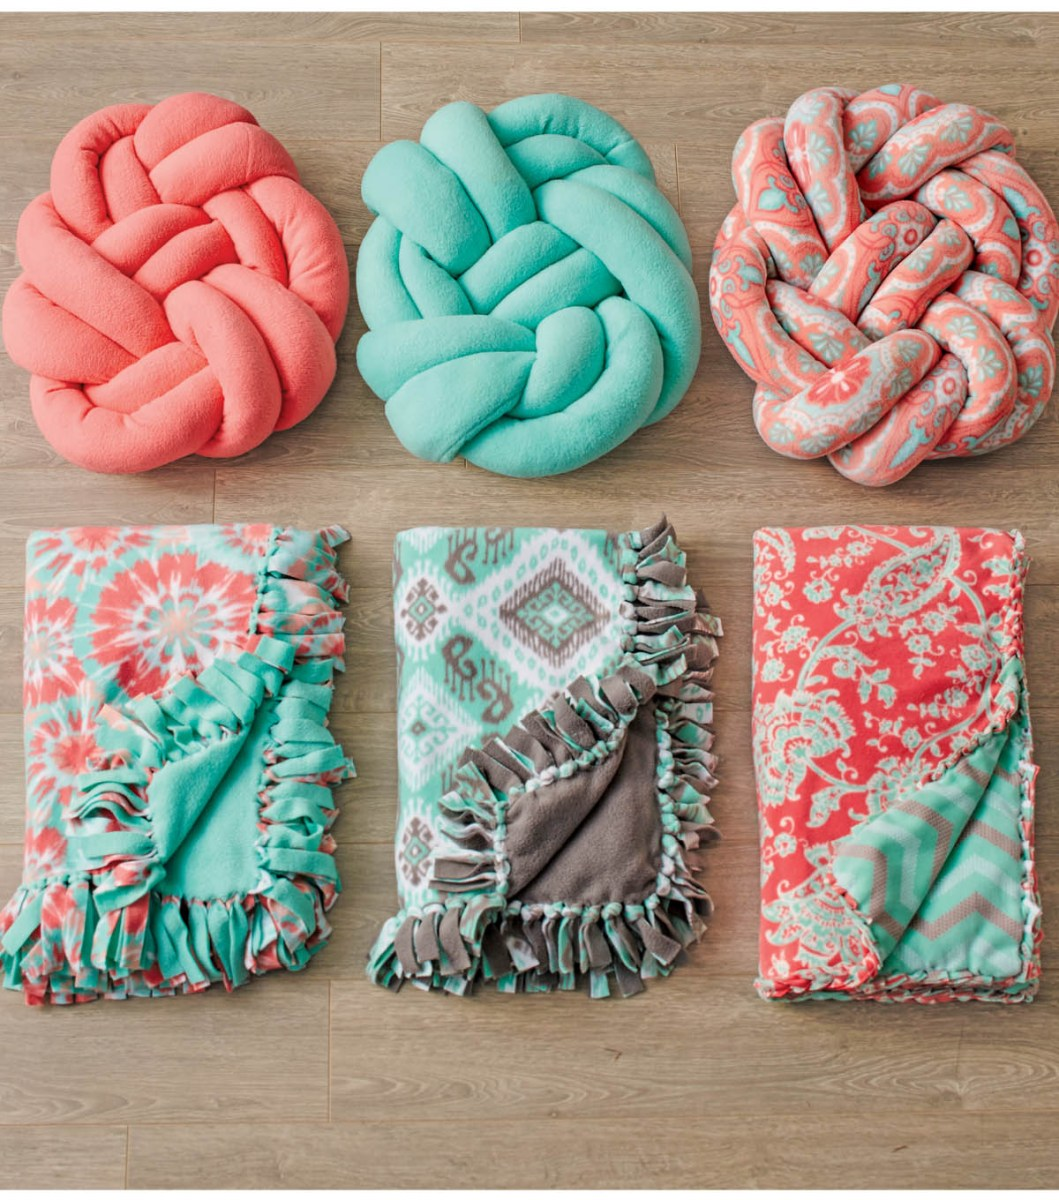 Fleece Sewing Projects 37 Easy Fleece Sewing Projects To Use Up Your Leftover Fleece